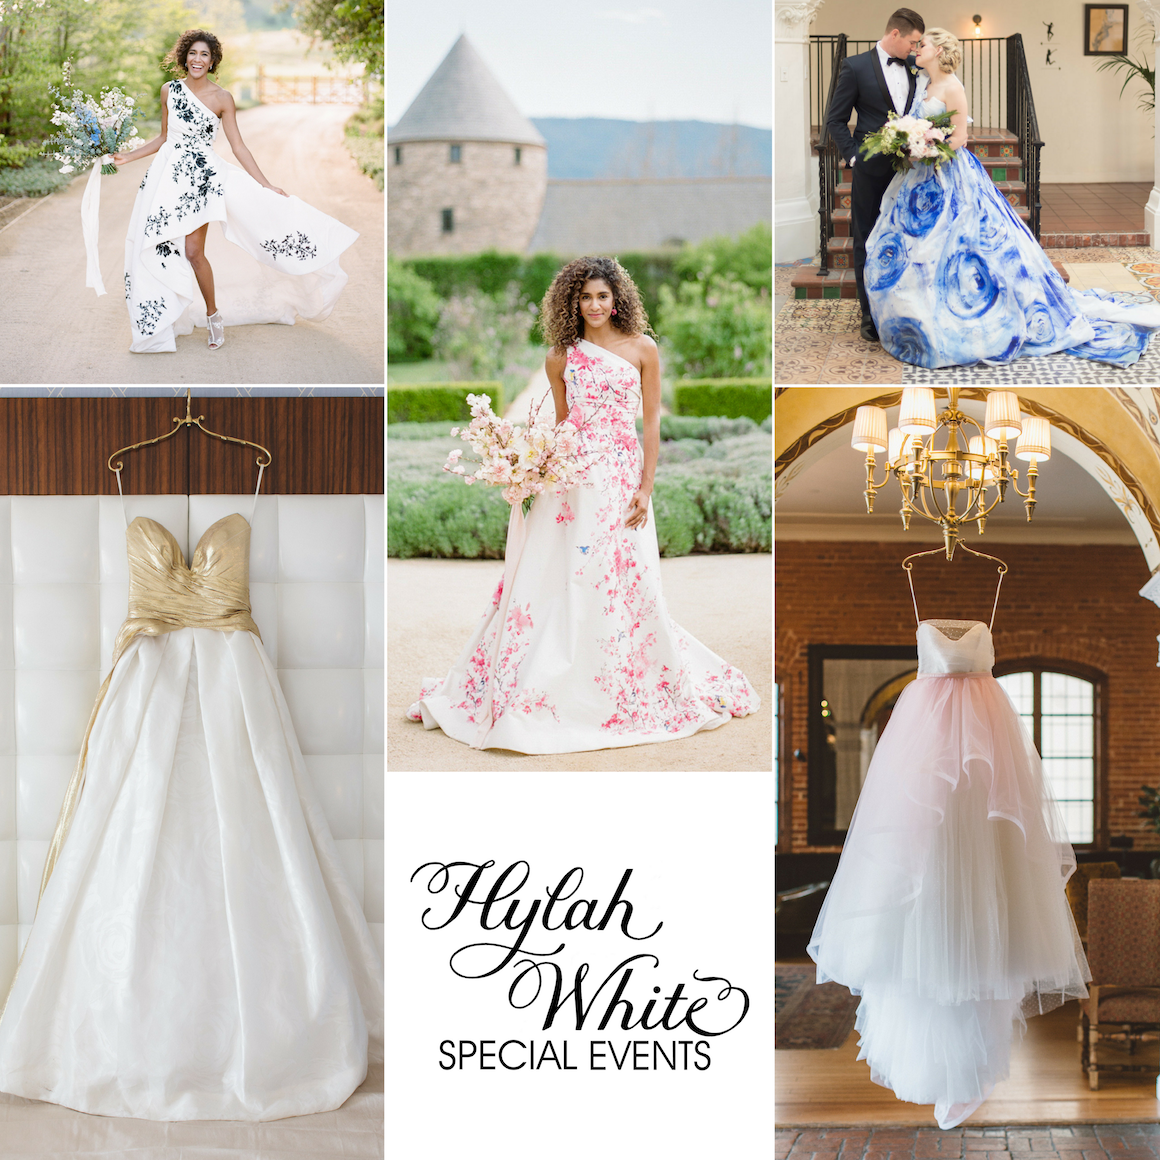 Unique And Beautiful Its Own Way To Help Begin Your Search We Have Brought You Some Of Our Favorite Atypical Wedding Dresses Inspire